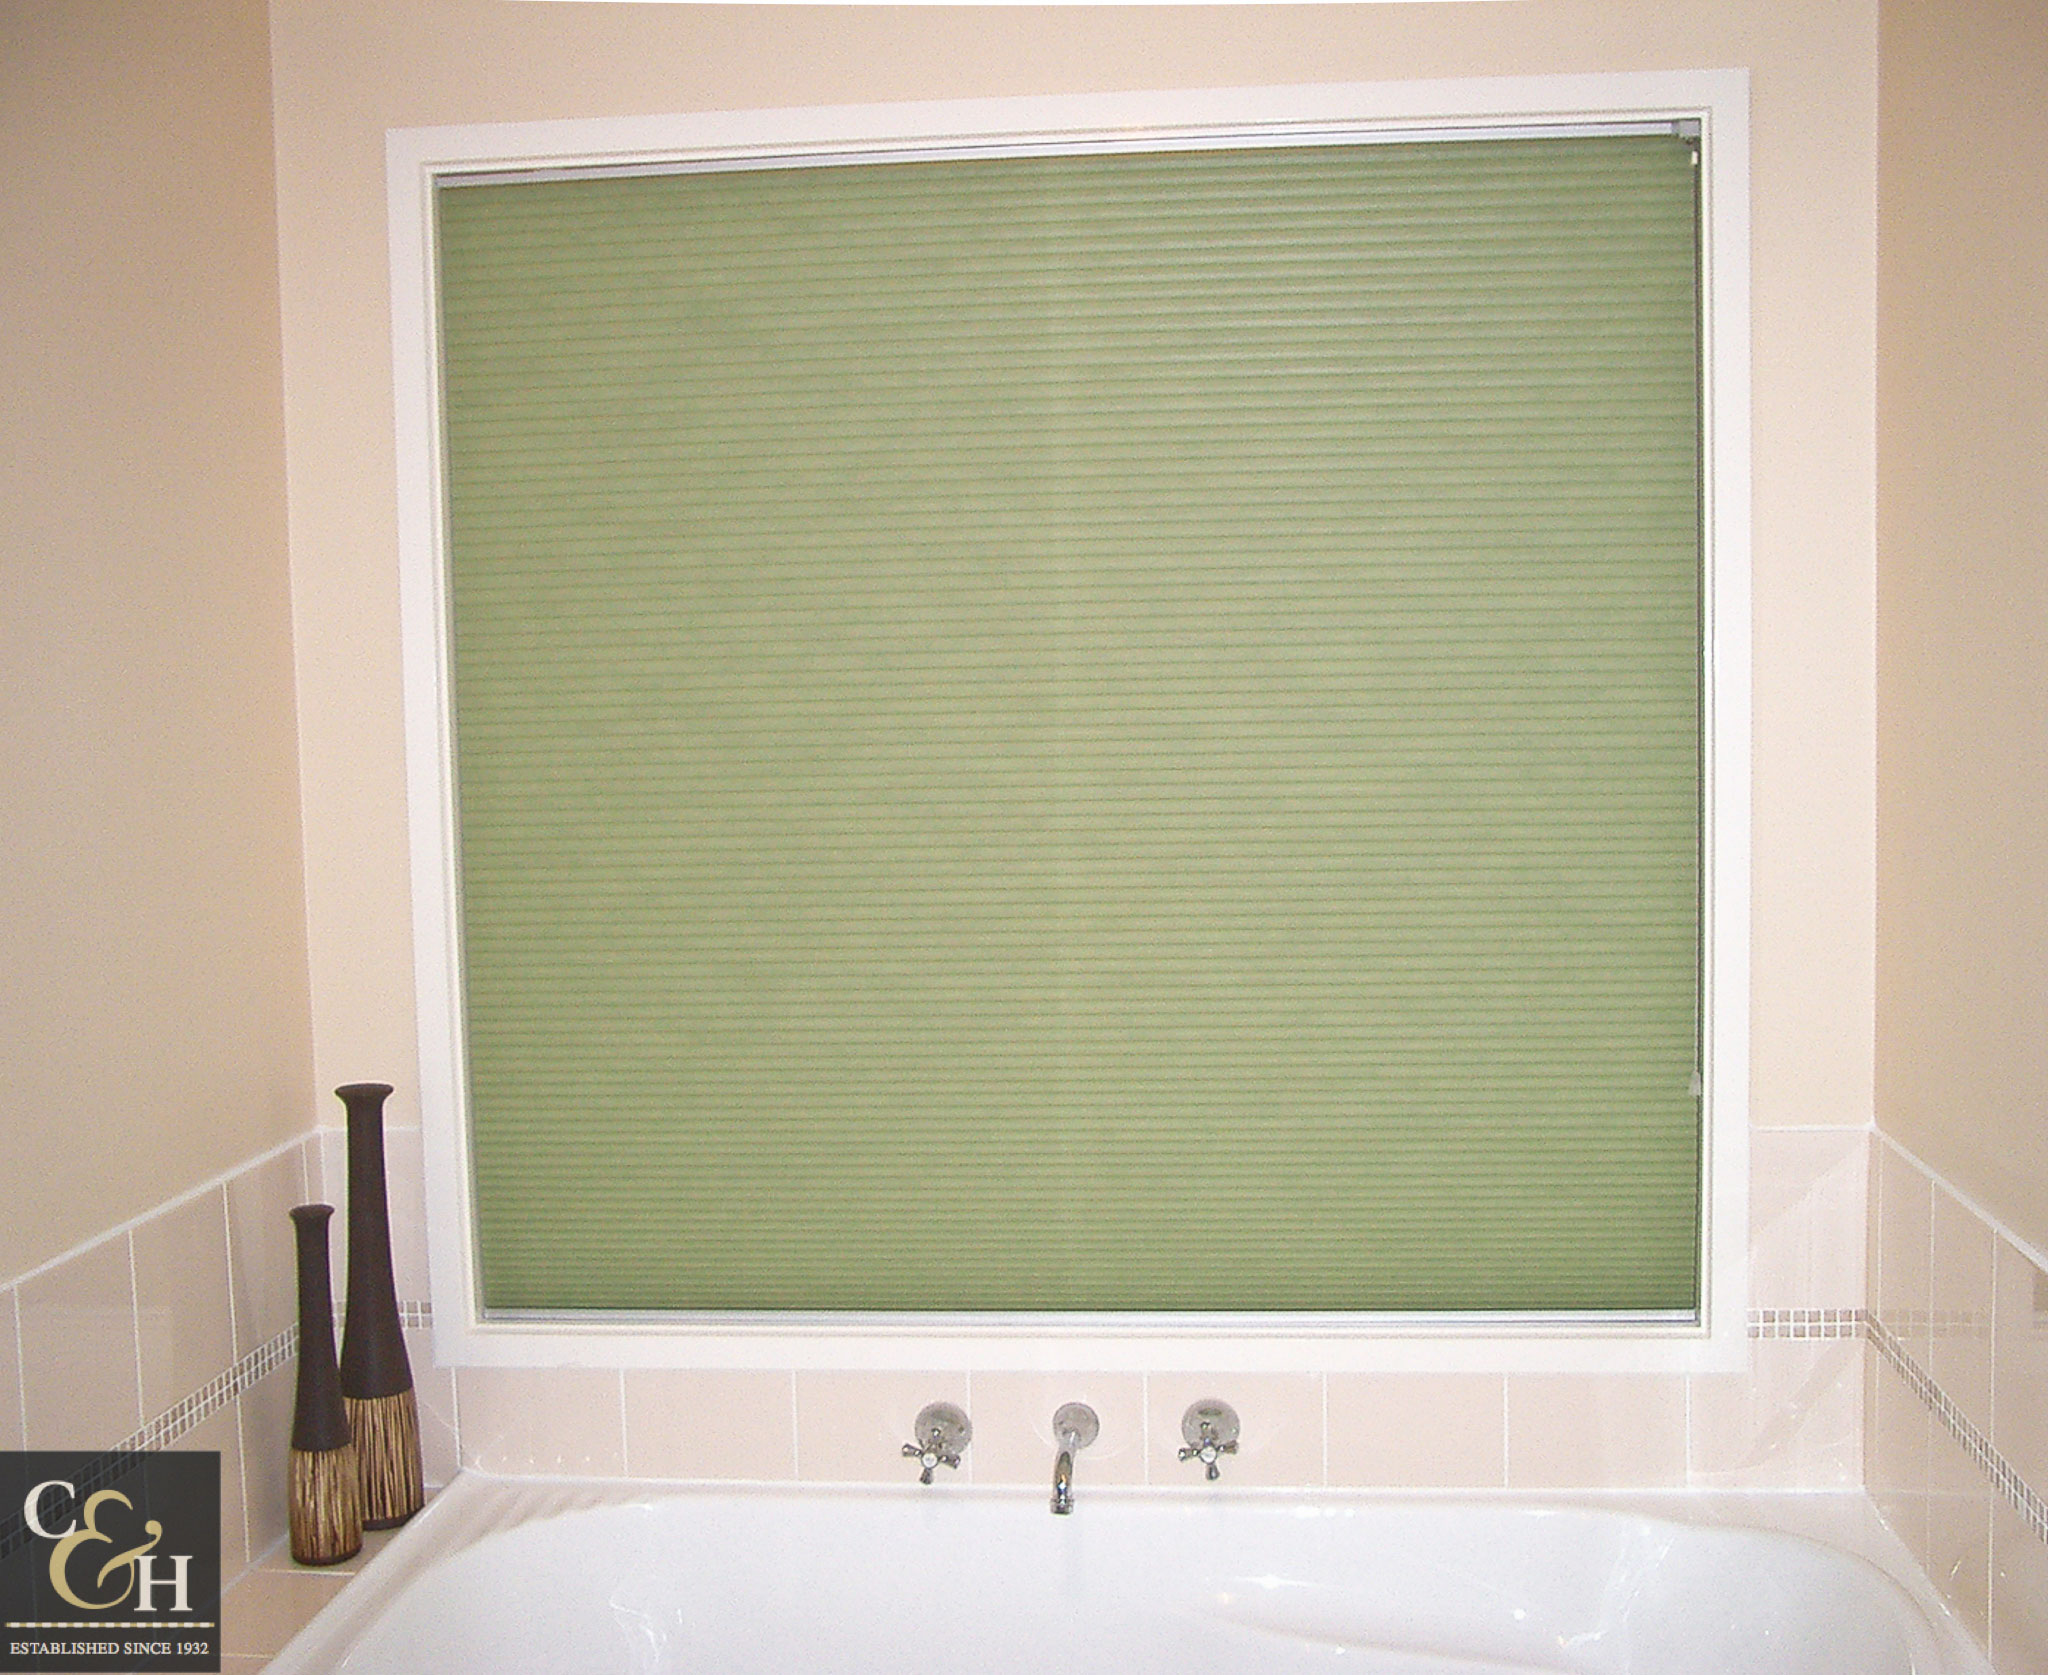 Honeycomb blinds 4 in a bathroom